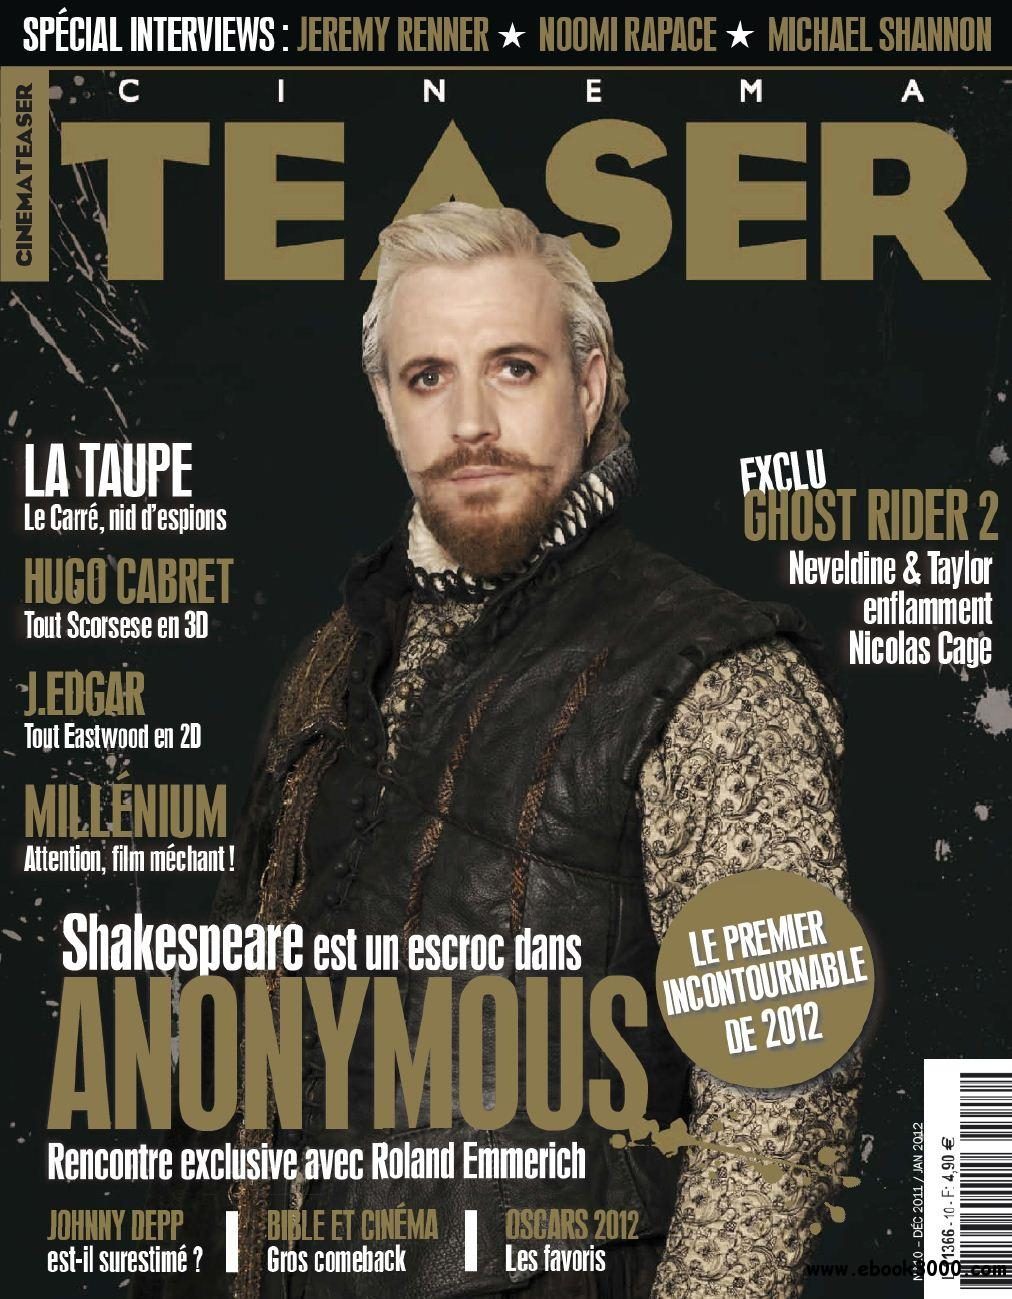 Cinema Teaser N 10 Decembre 2011 - Janvier 2012 free download